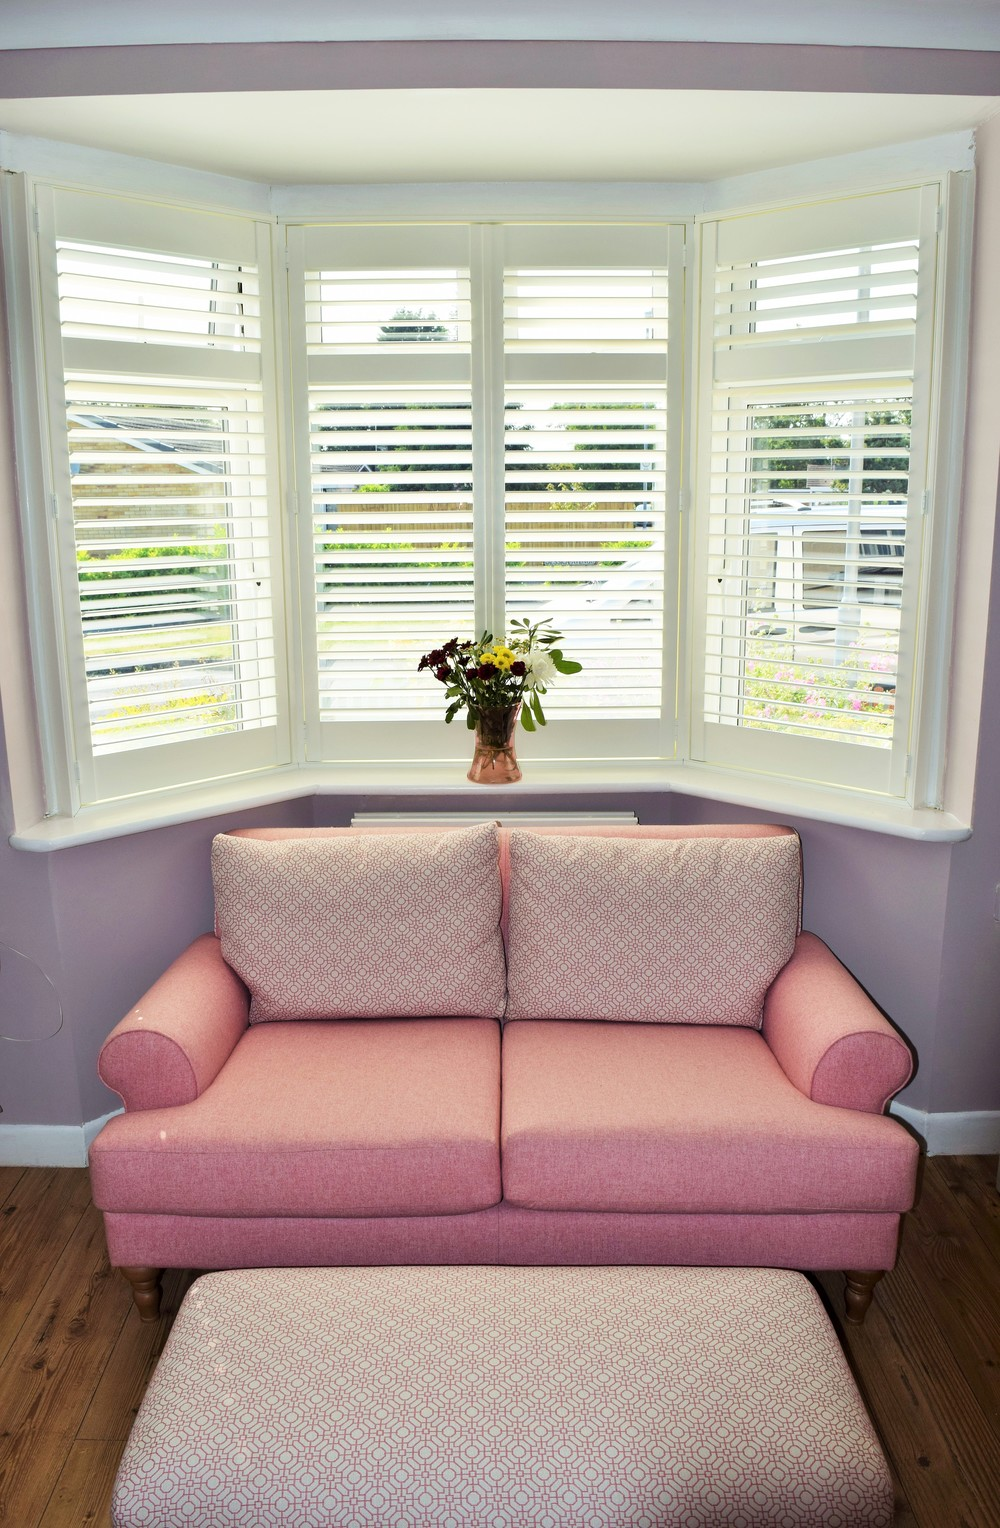 Bay window shutters Verwood Ringwood Dorset.JPG